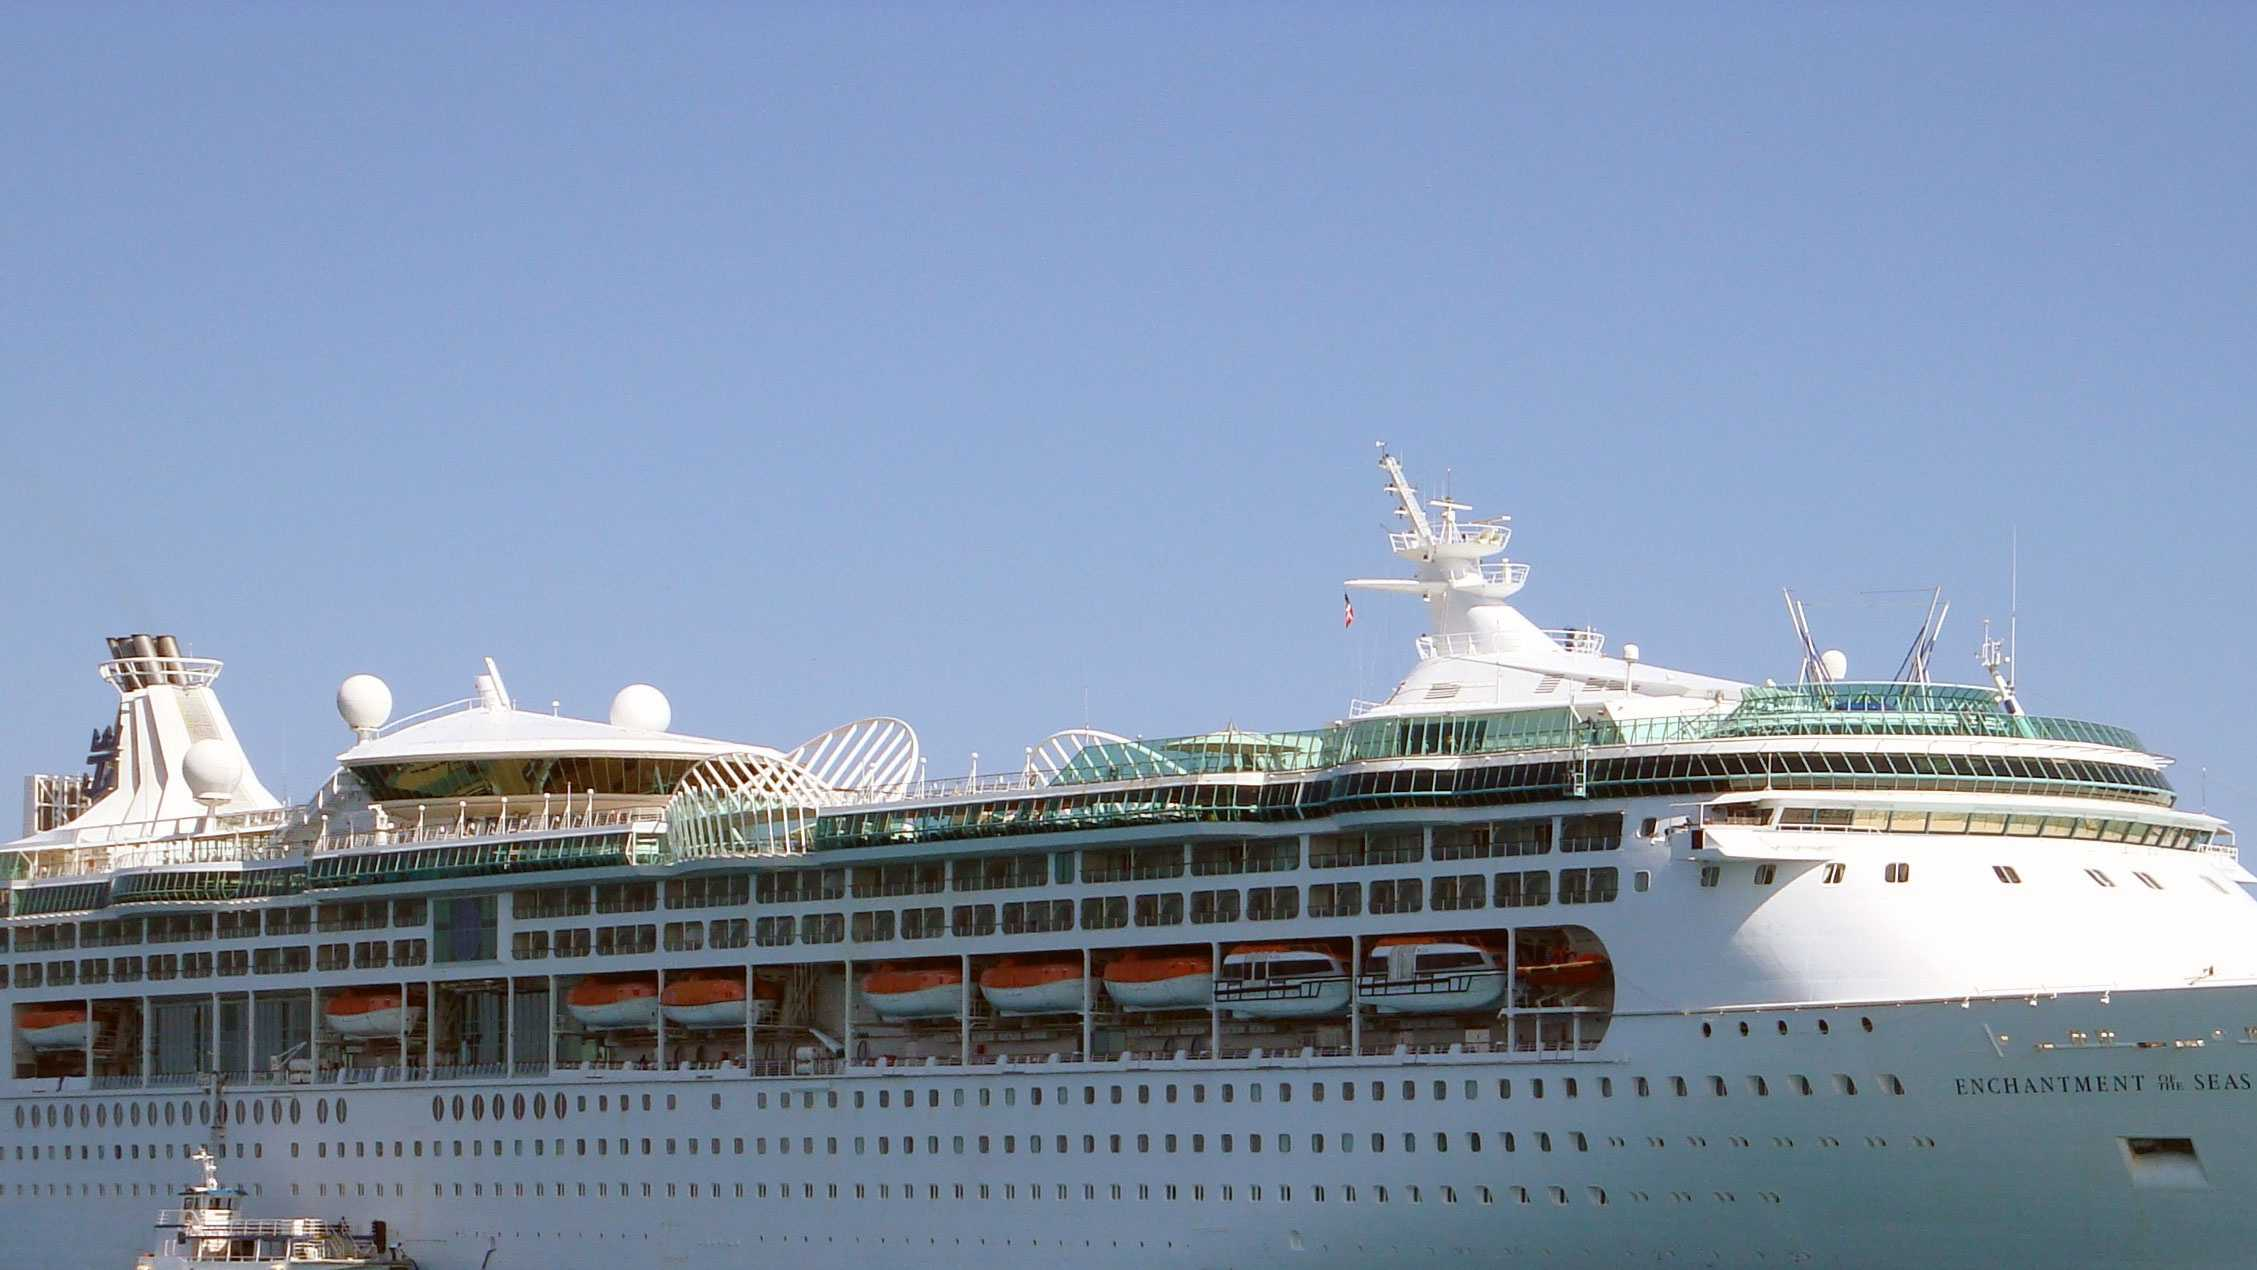 The woman was found dead by her husband on this Royal Caribbean ship.